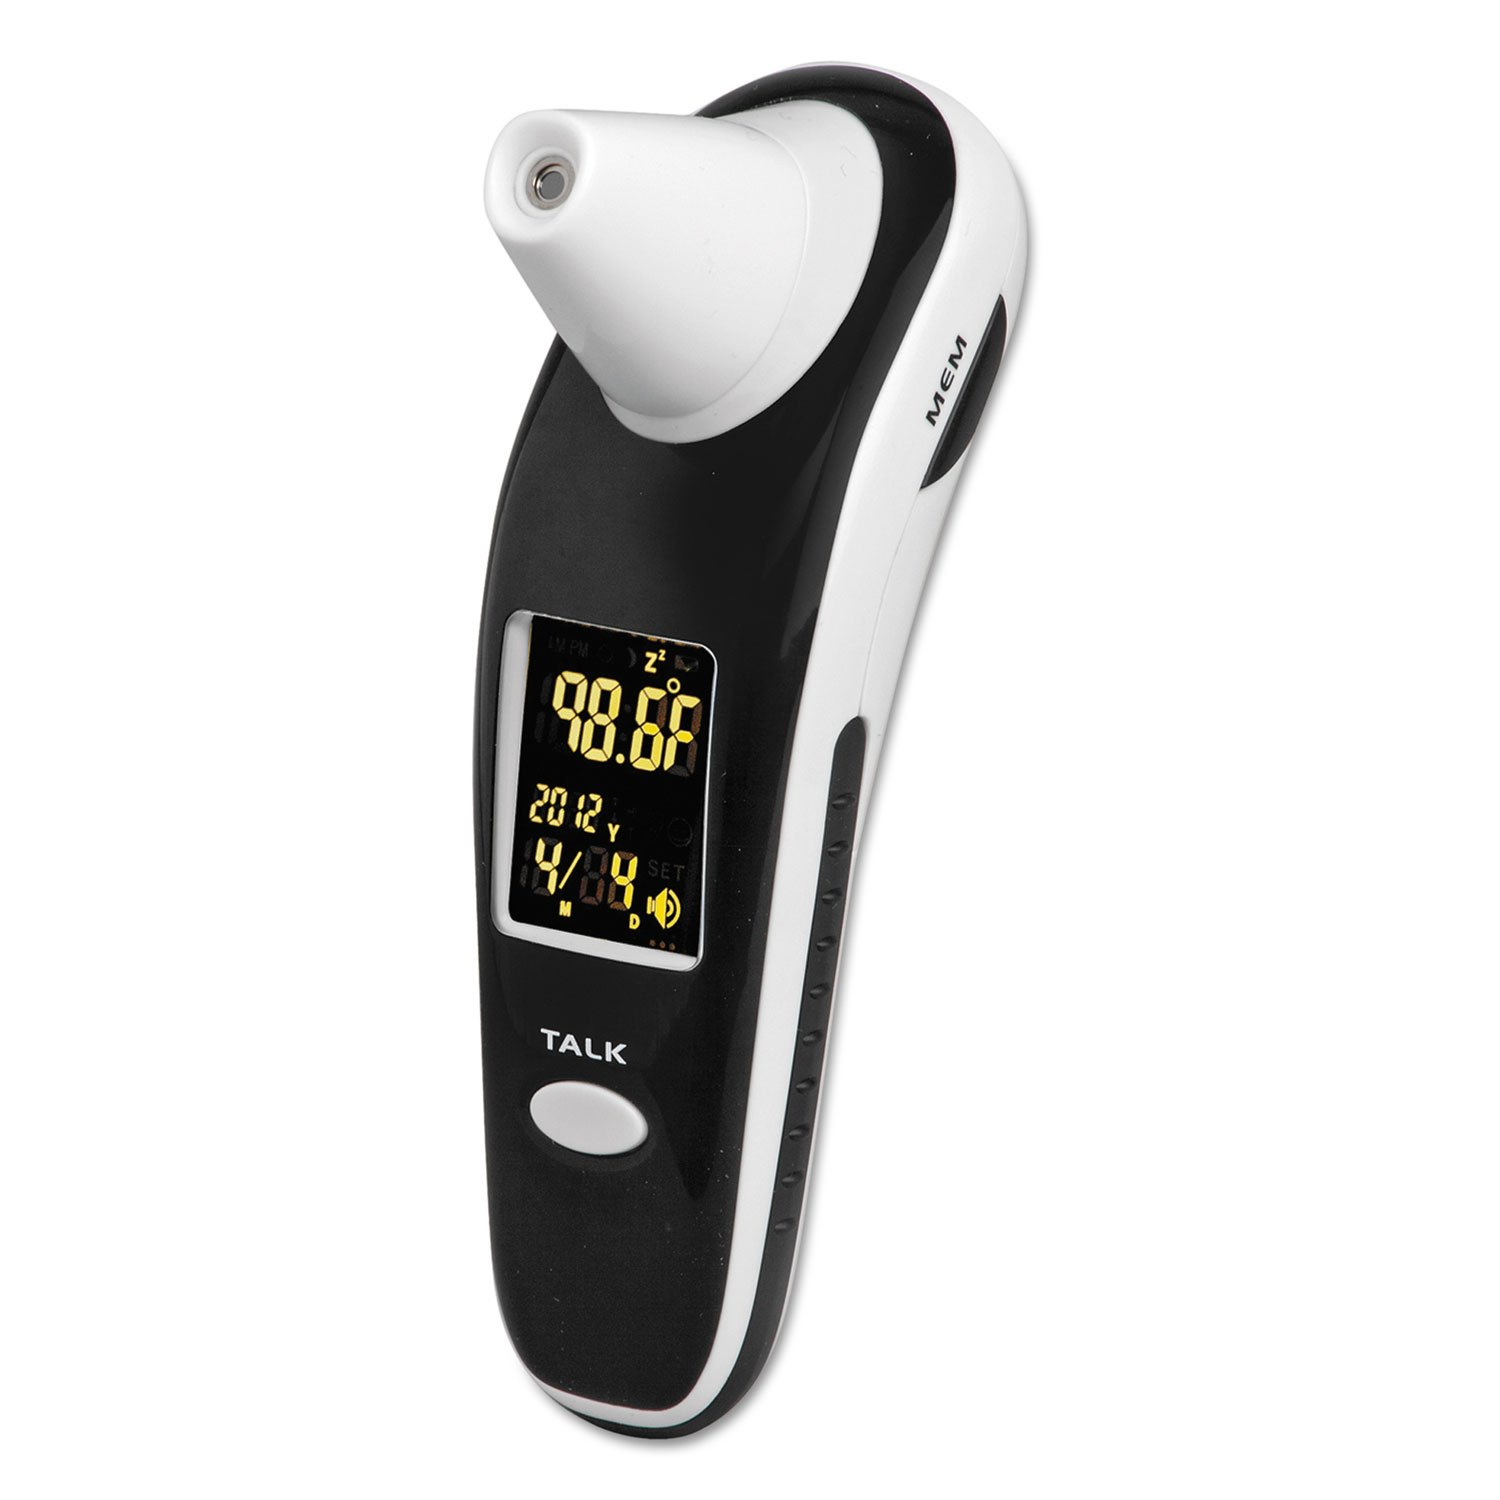 HealthSmart 18935000 DigiScan Forehead & Ear Thermometer Black/White Digital/Verbal Readout